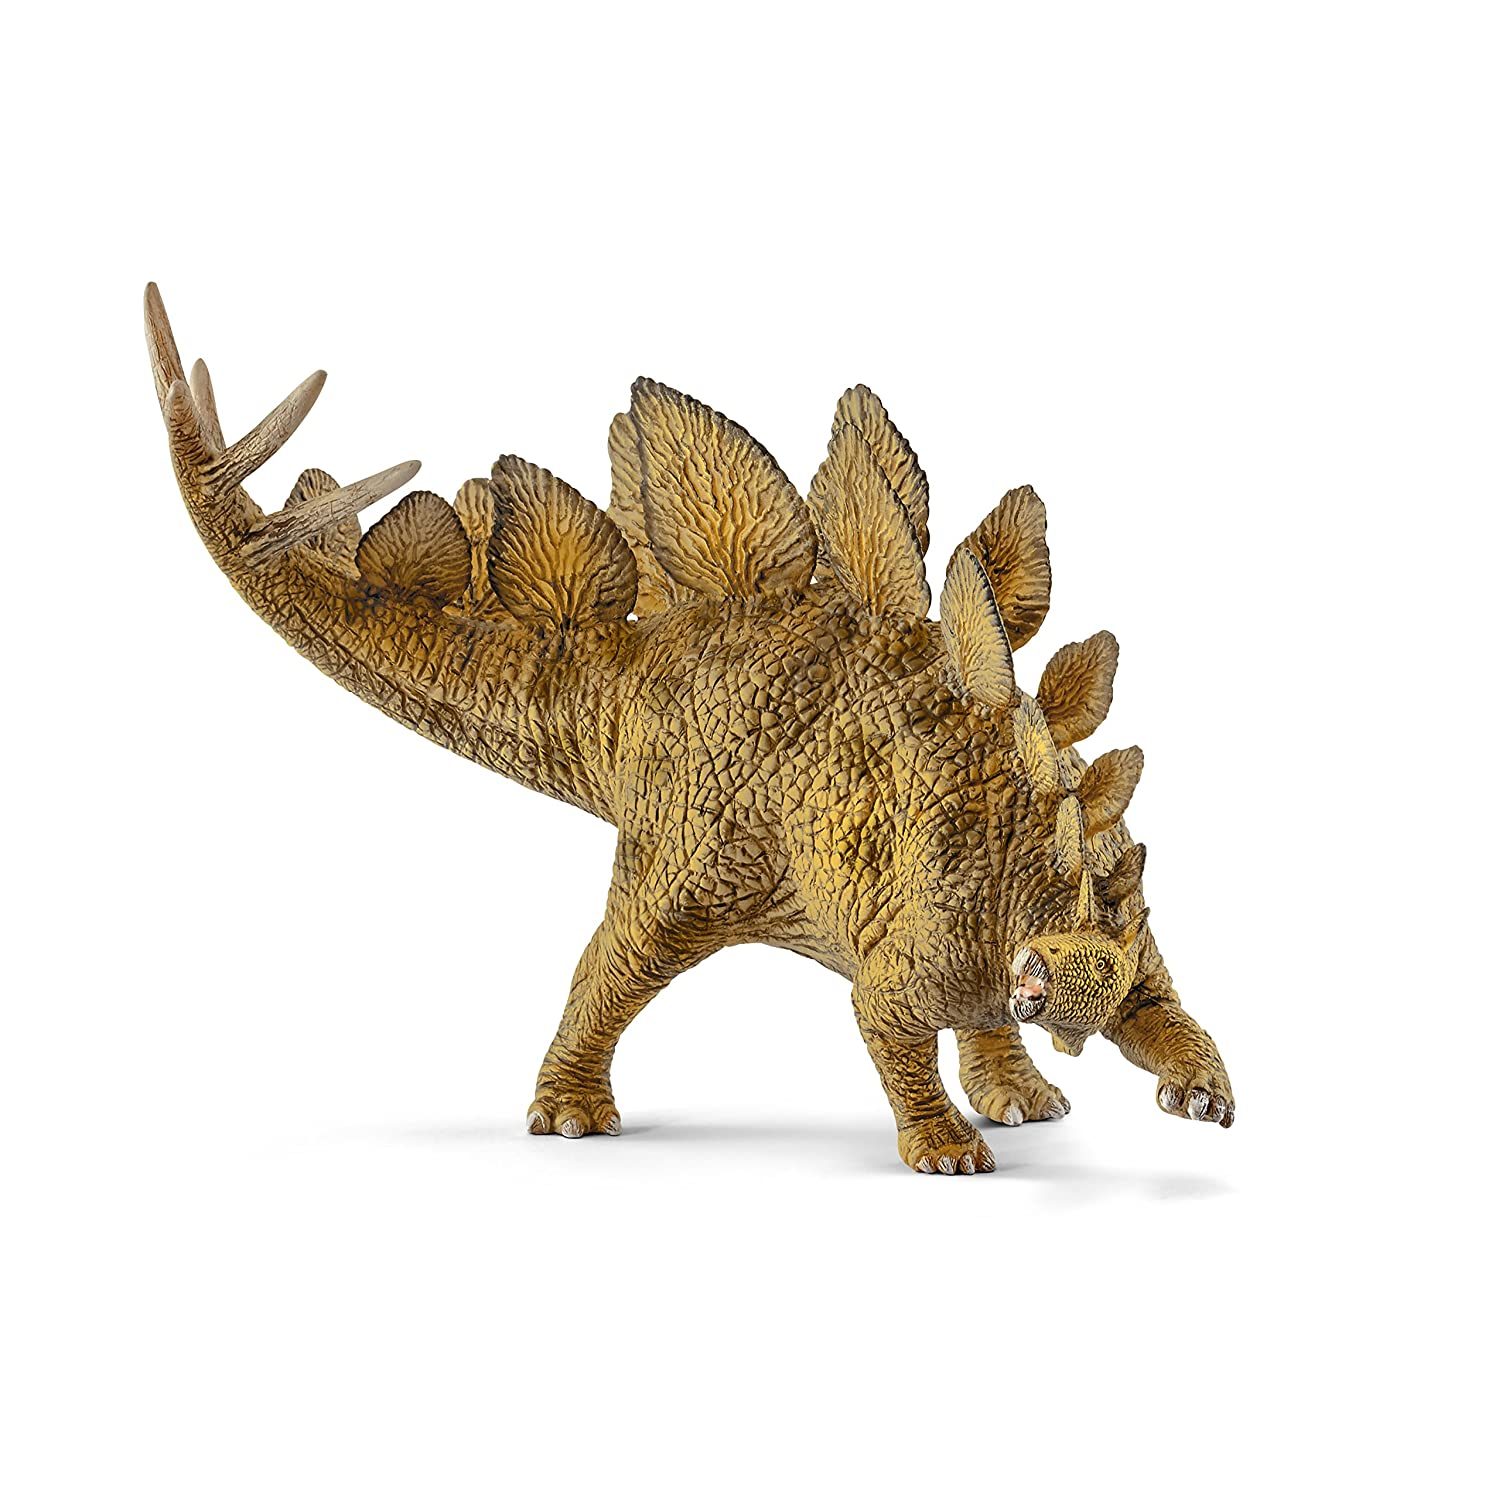 Schleich North America Stegosaurus Toy